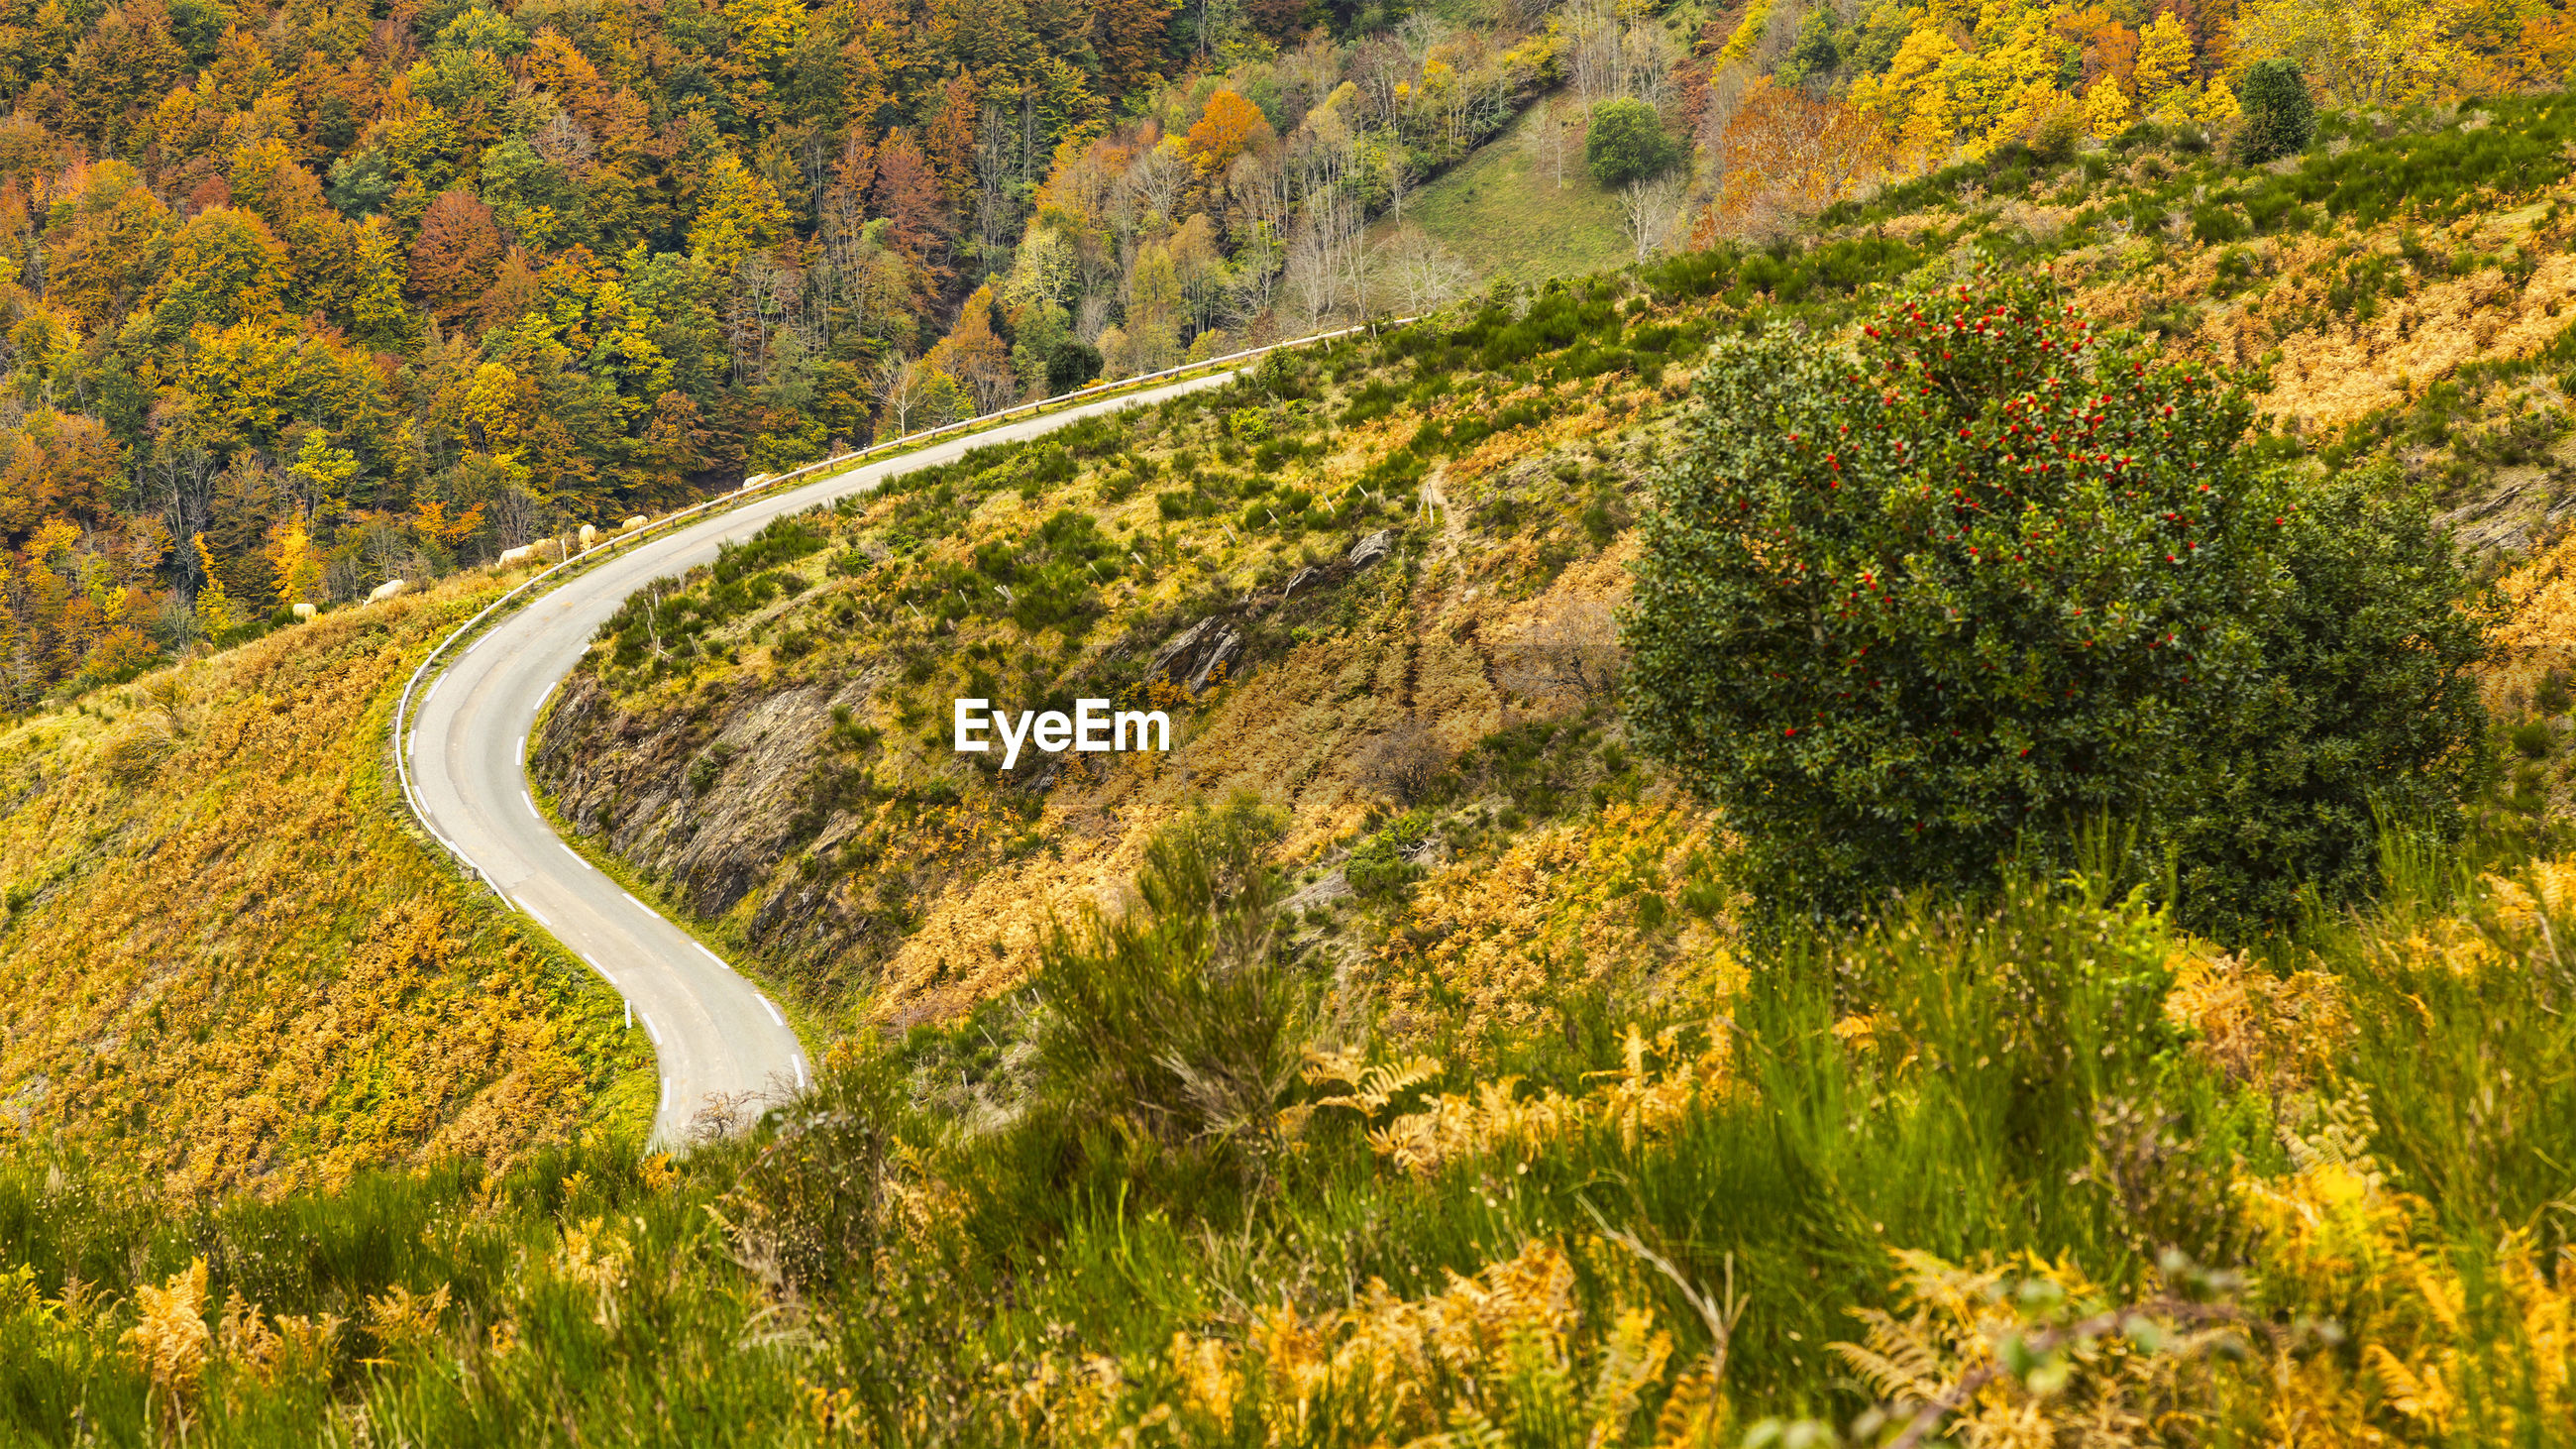 Scenic view of road amidst trees during autumn